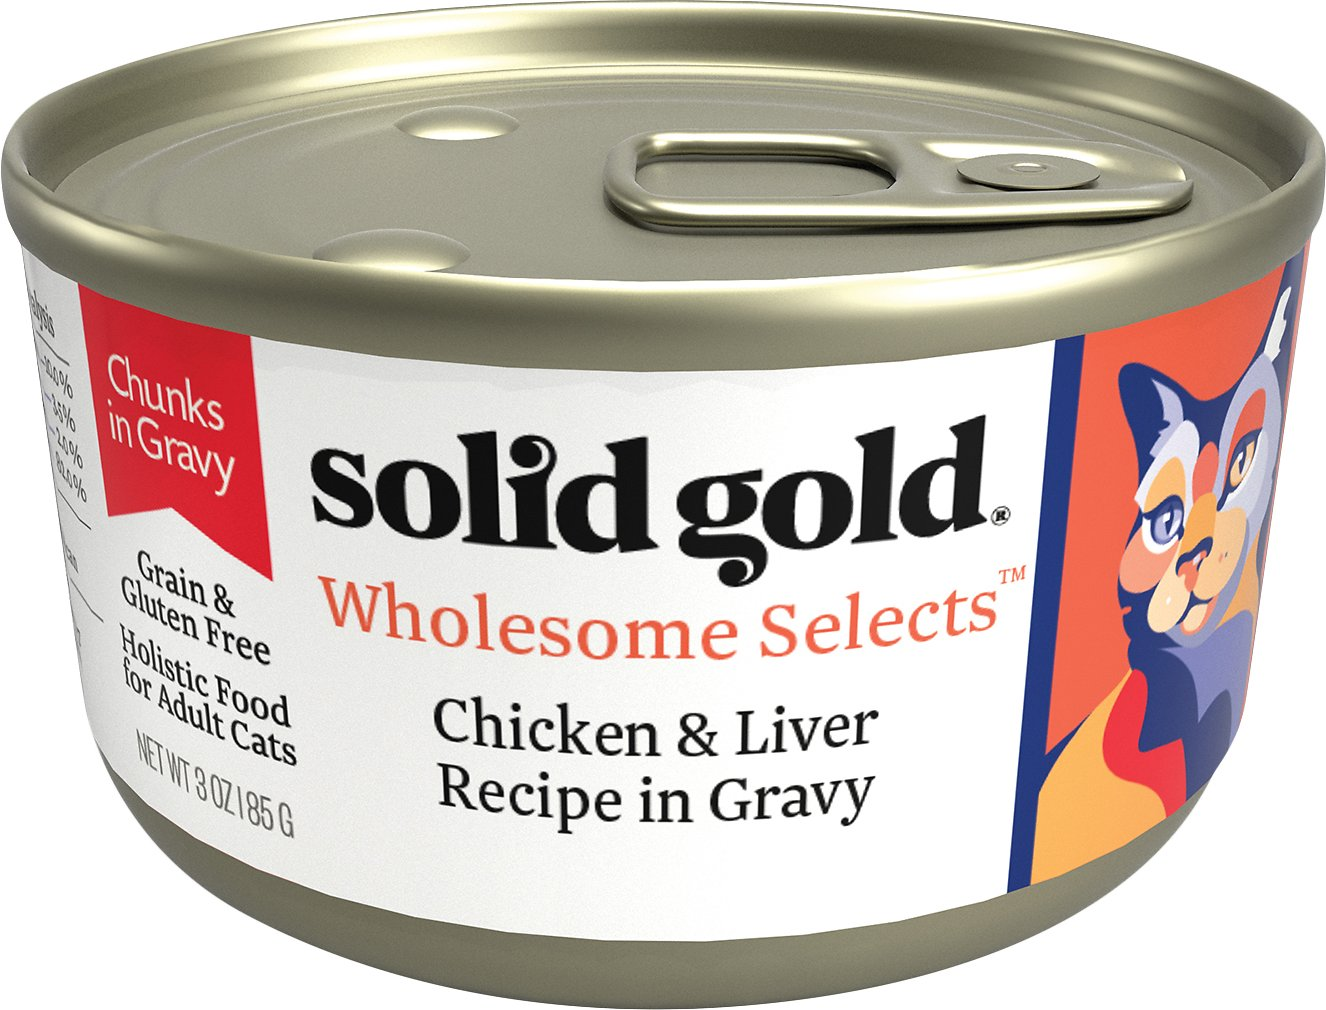 Solid Gold Dawn's Sky Holistic Wet Cat Food, Chicken & Liver in Gravy, Adult Cats, 3oz Can, 24 Count